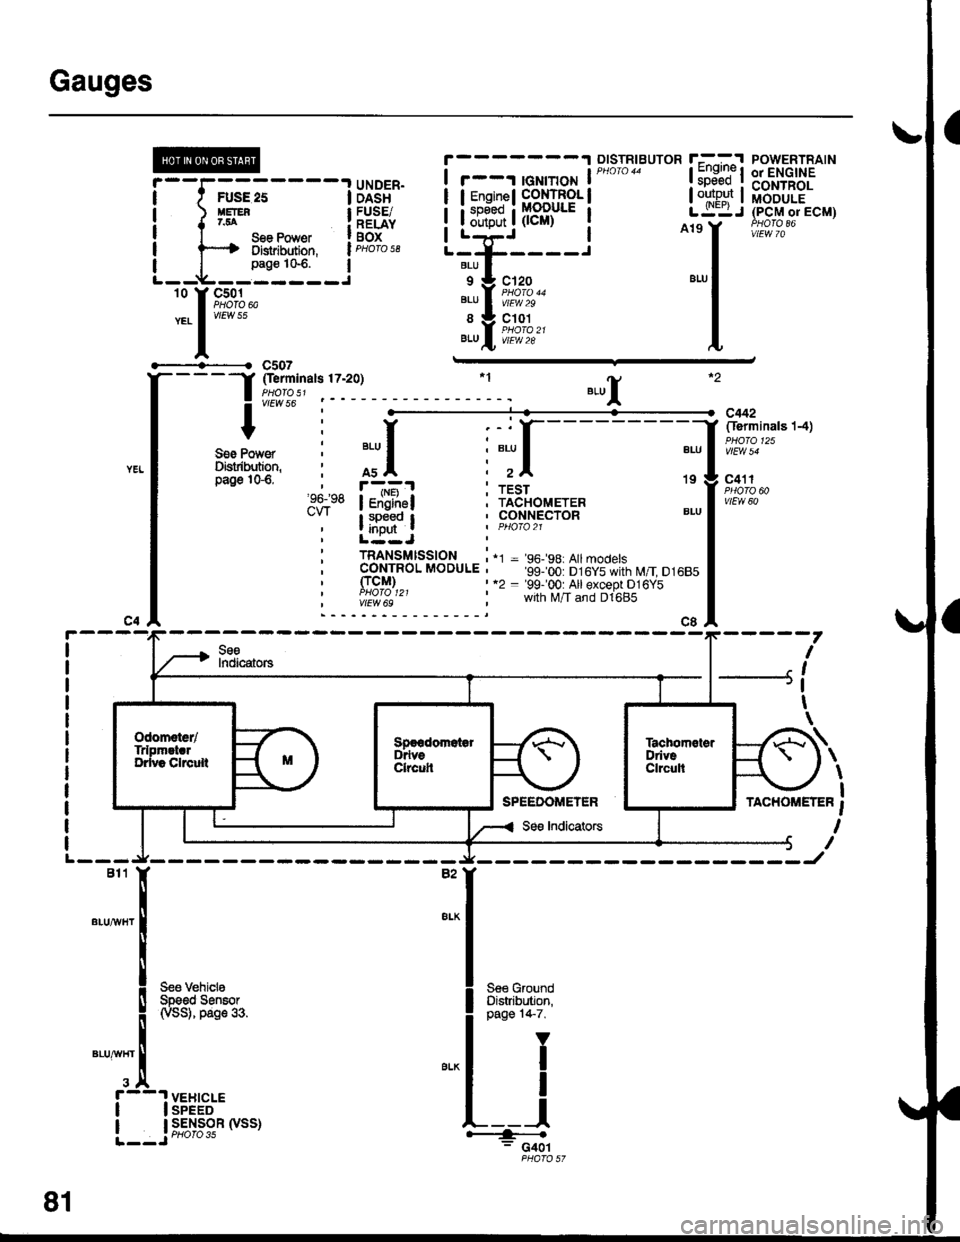 [WRG-2570] Mercedes Ml350 Fuse Box Diagram